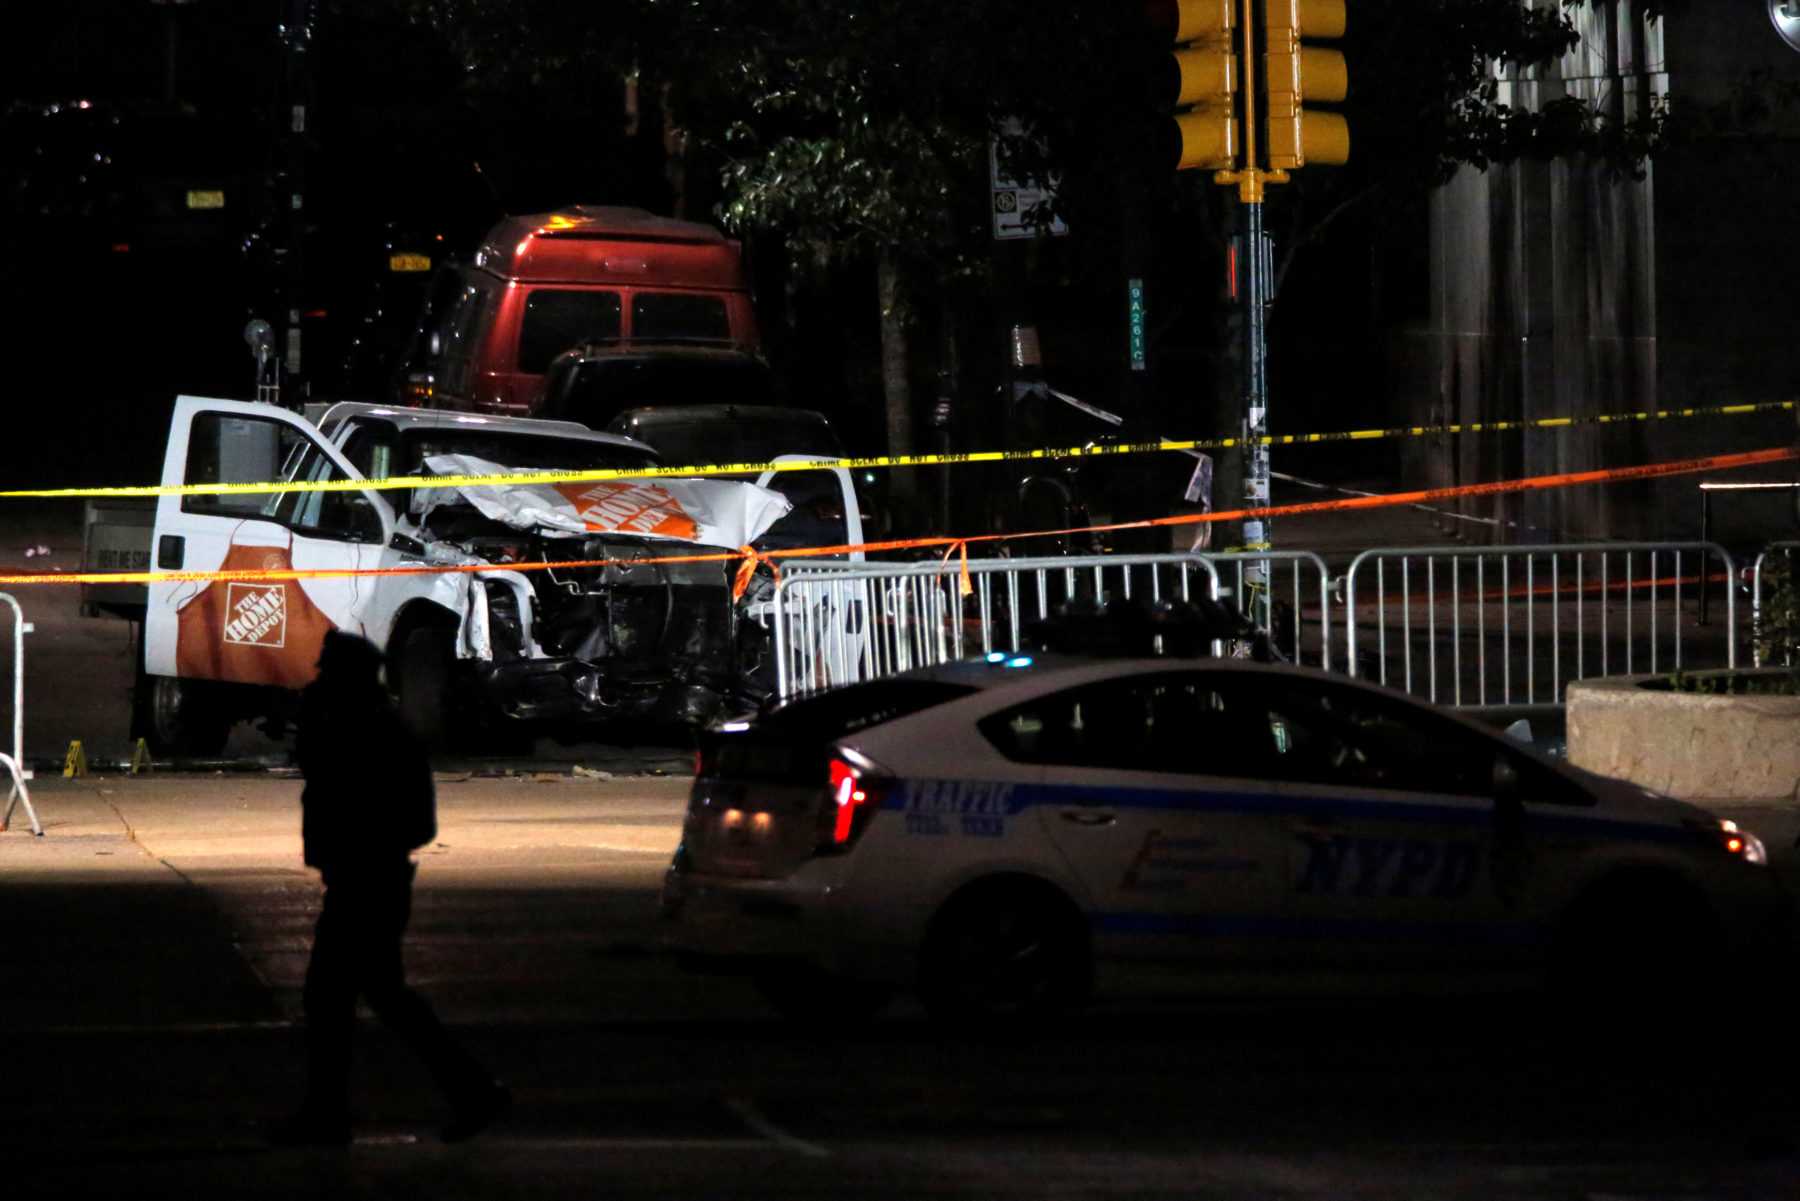 8 Killed When Truck Runs Into Crowd in NYC; Note Claims Attack for ISIS